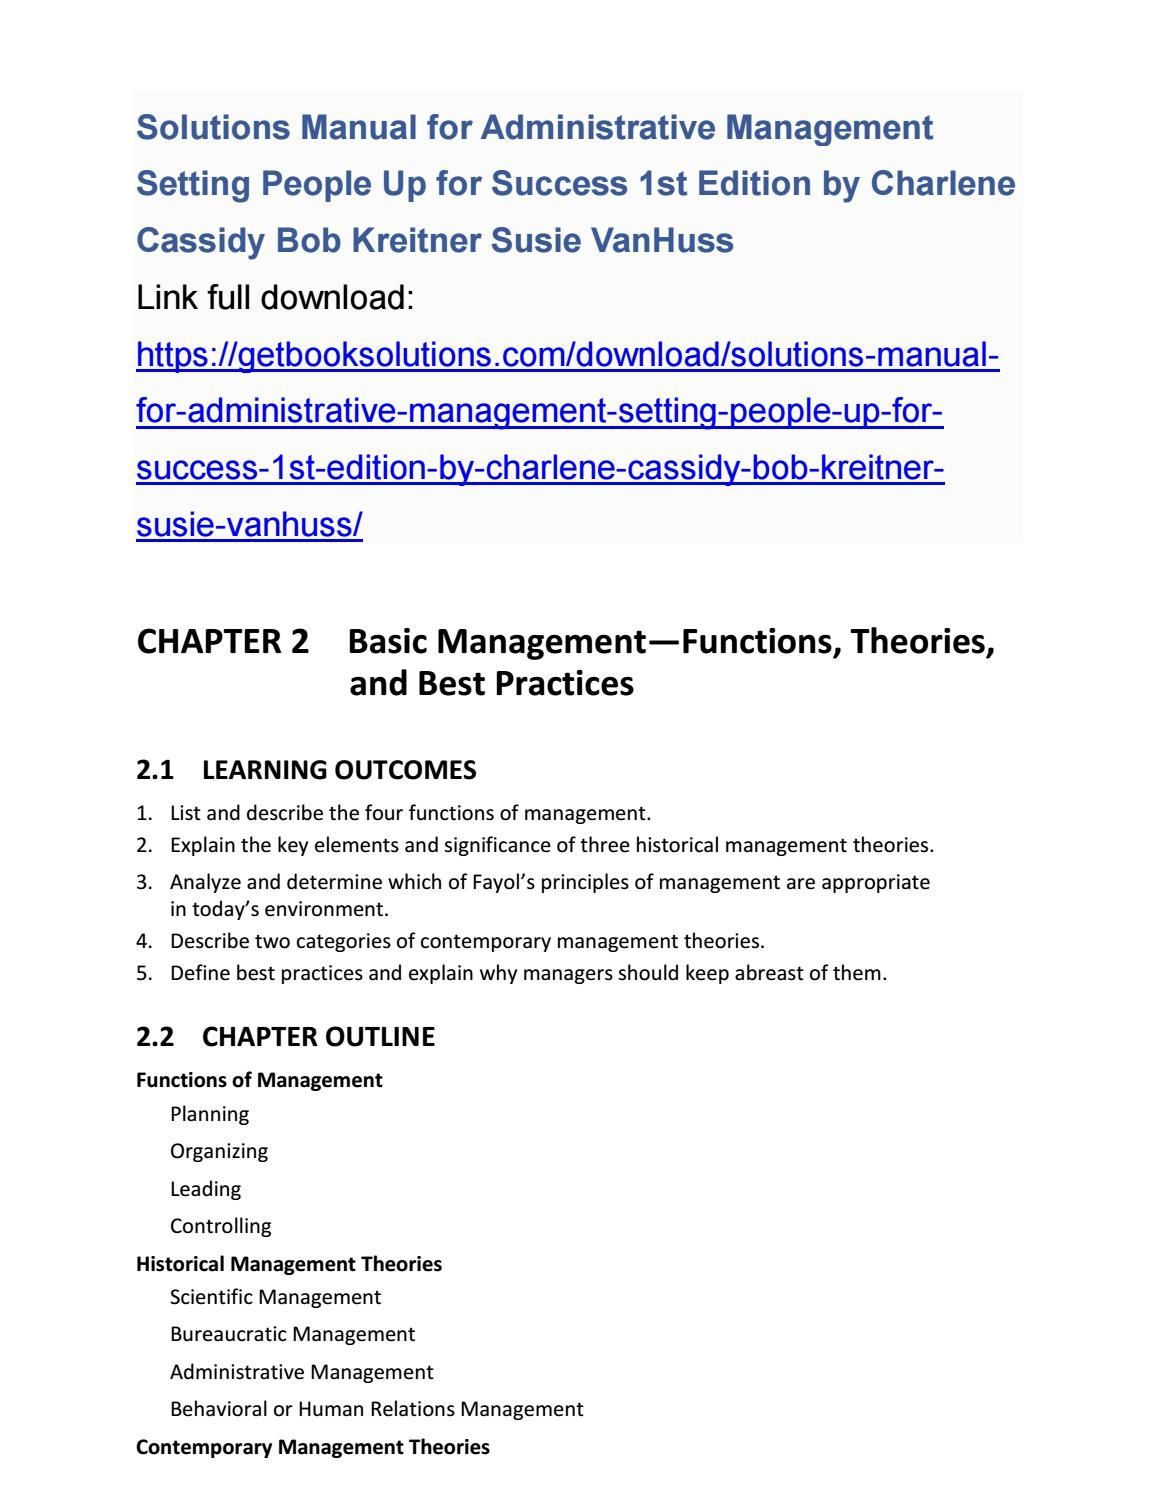 Solutions manual for administrative management setting people up for  success 1st edition by charlene